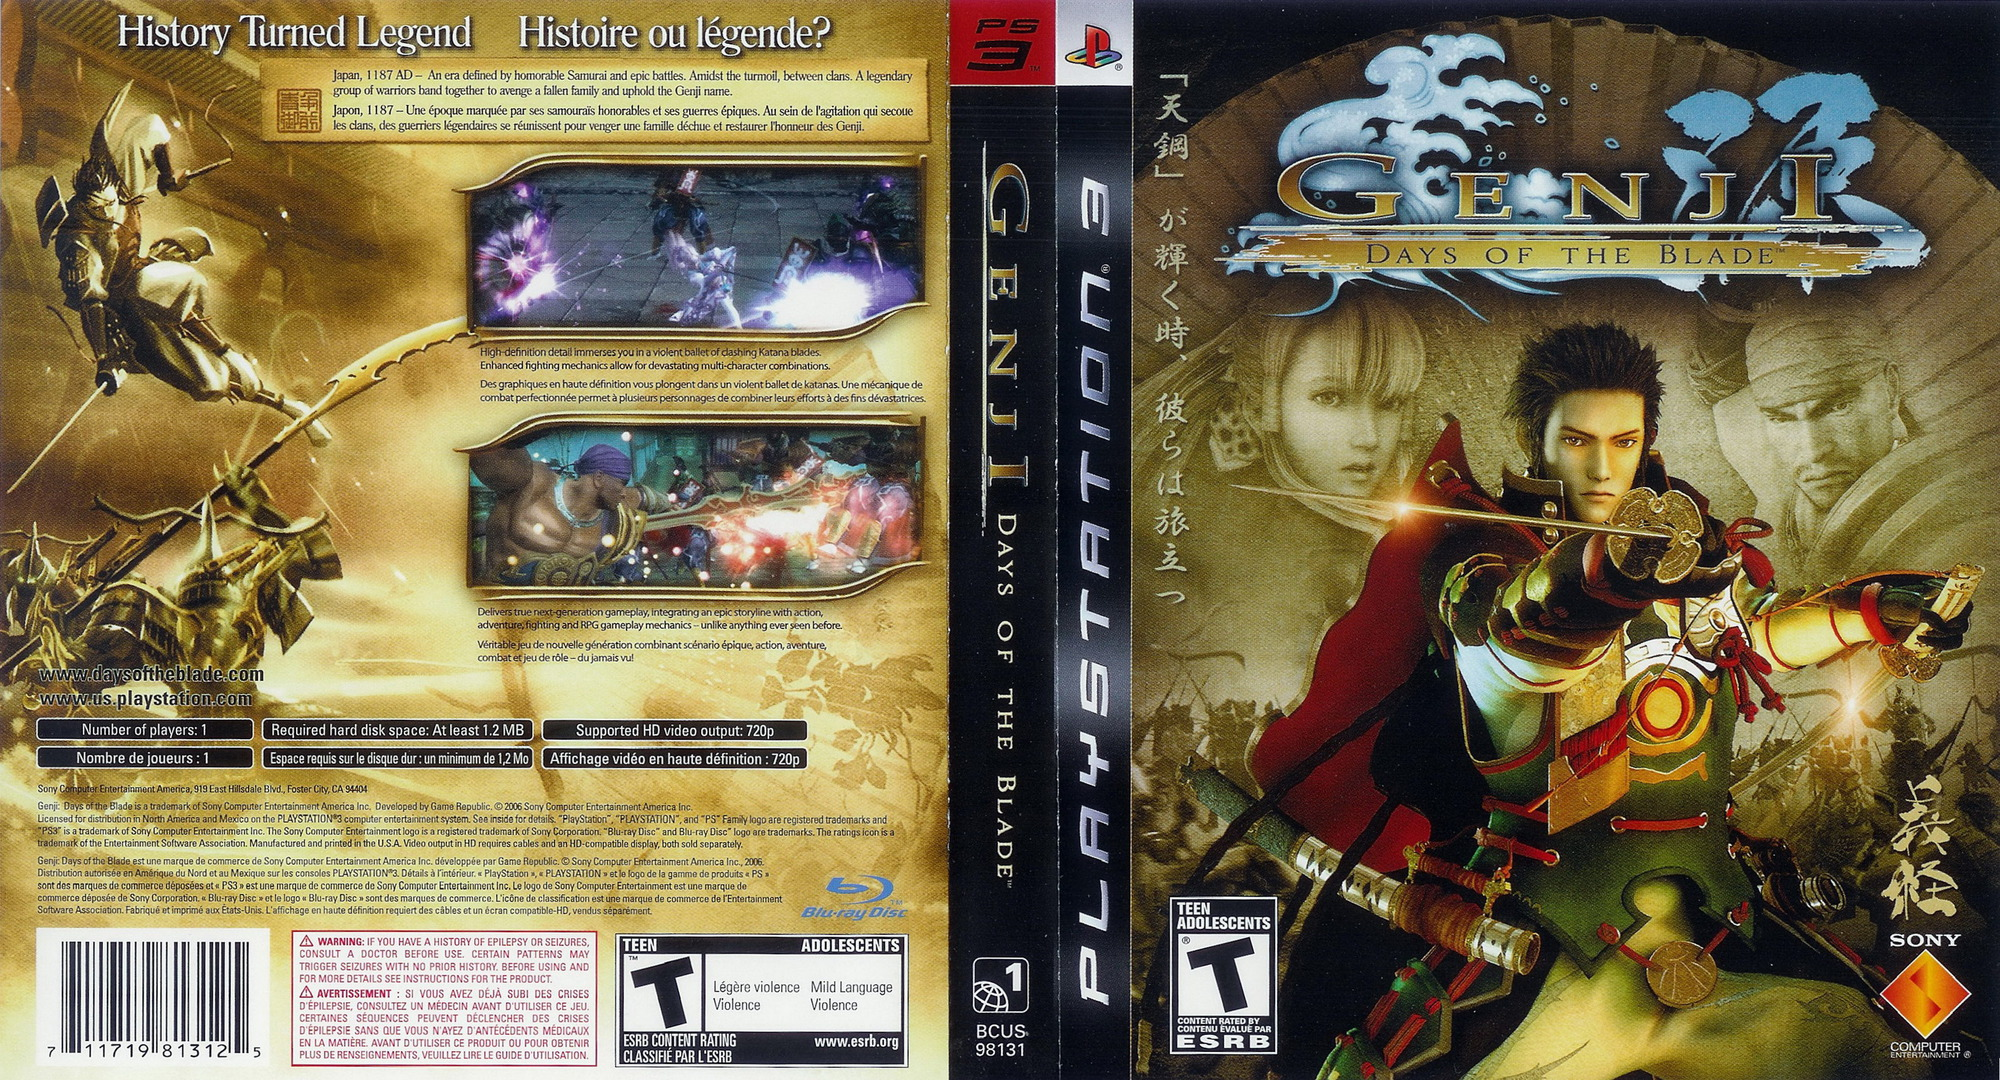 Genji: Days of the Blade PS3 coverfullHQ2 (BCUS98131)